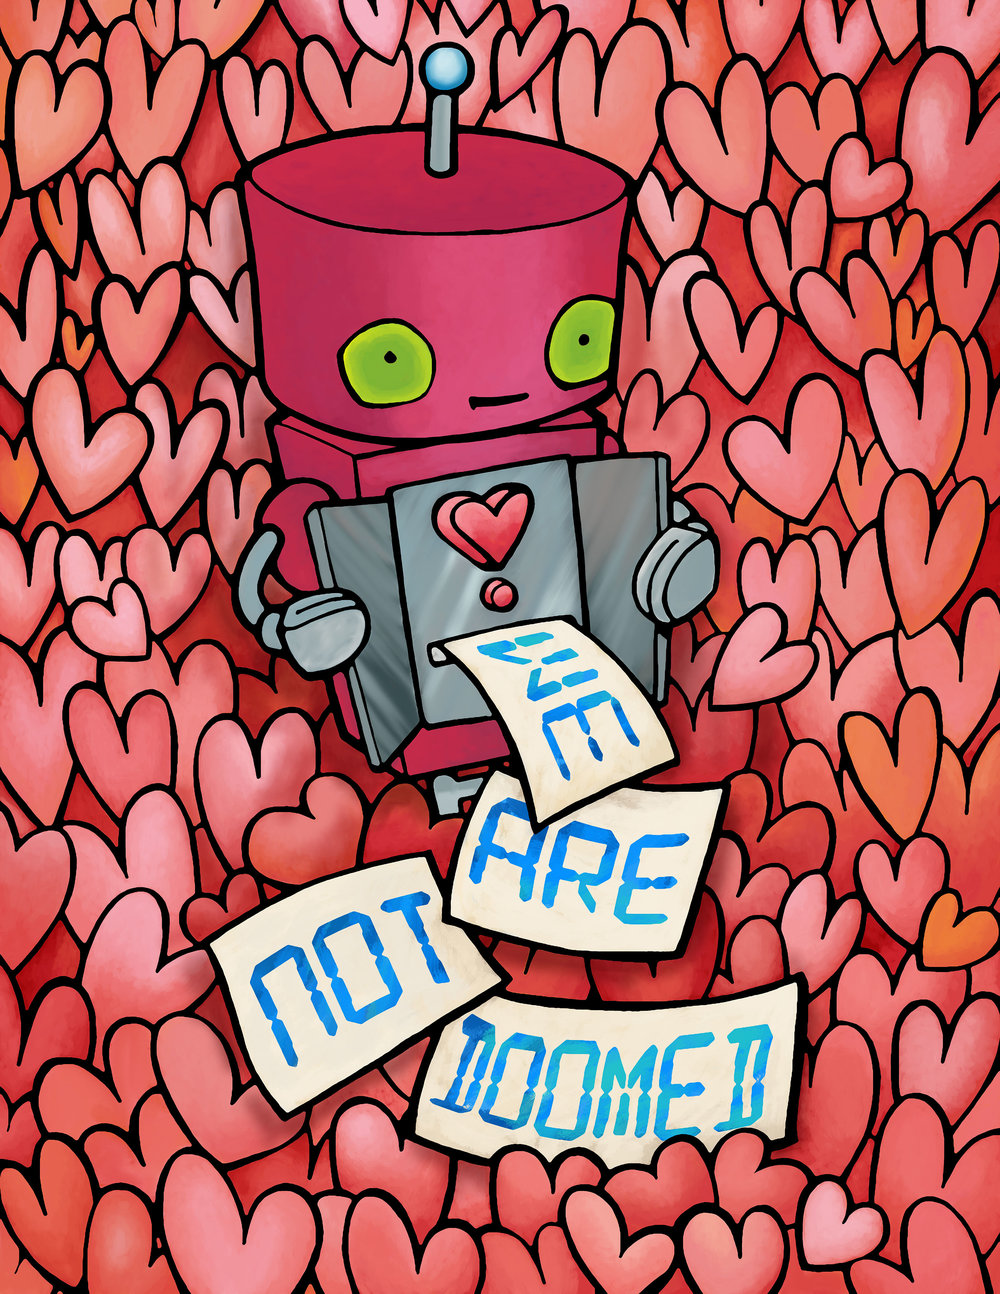 We Are Not Doomed - click to download hi res file